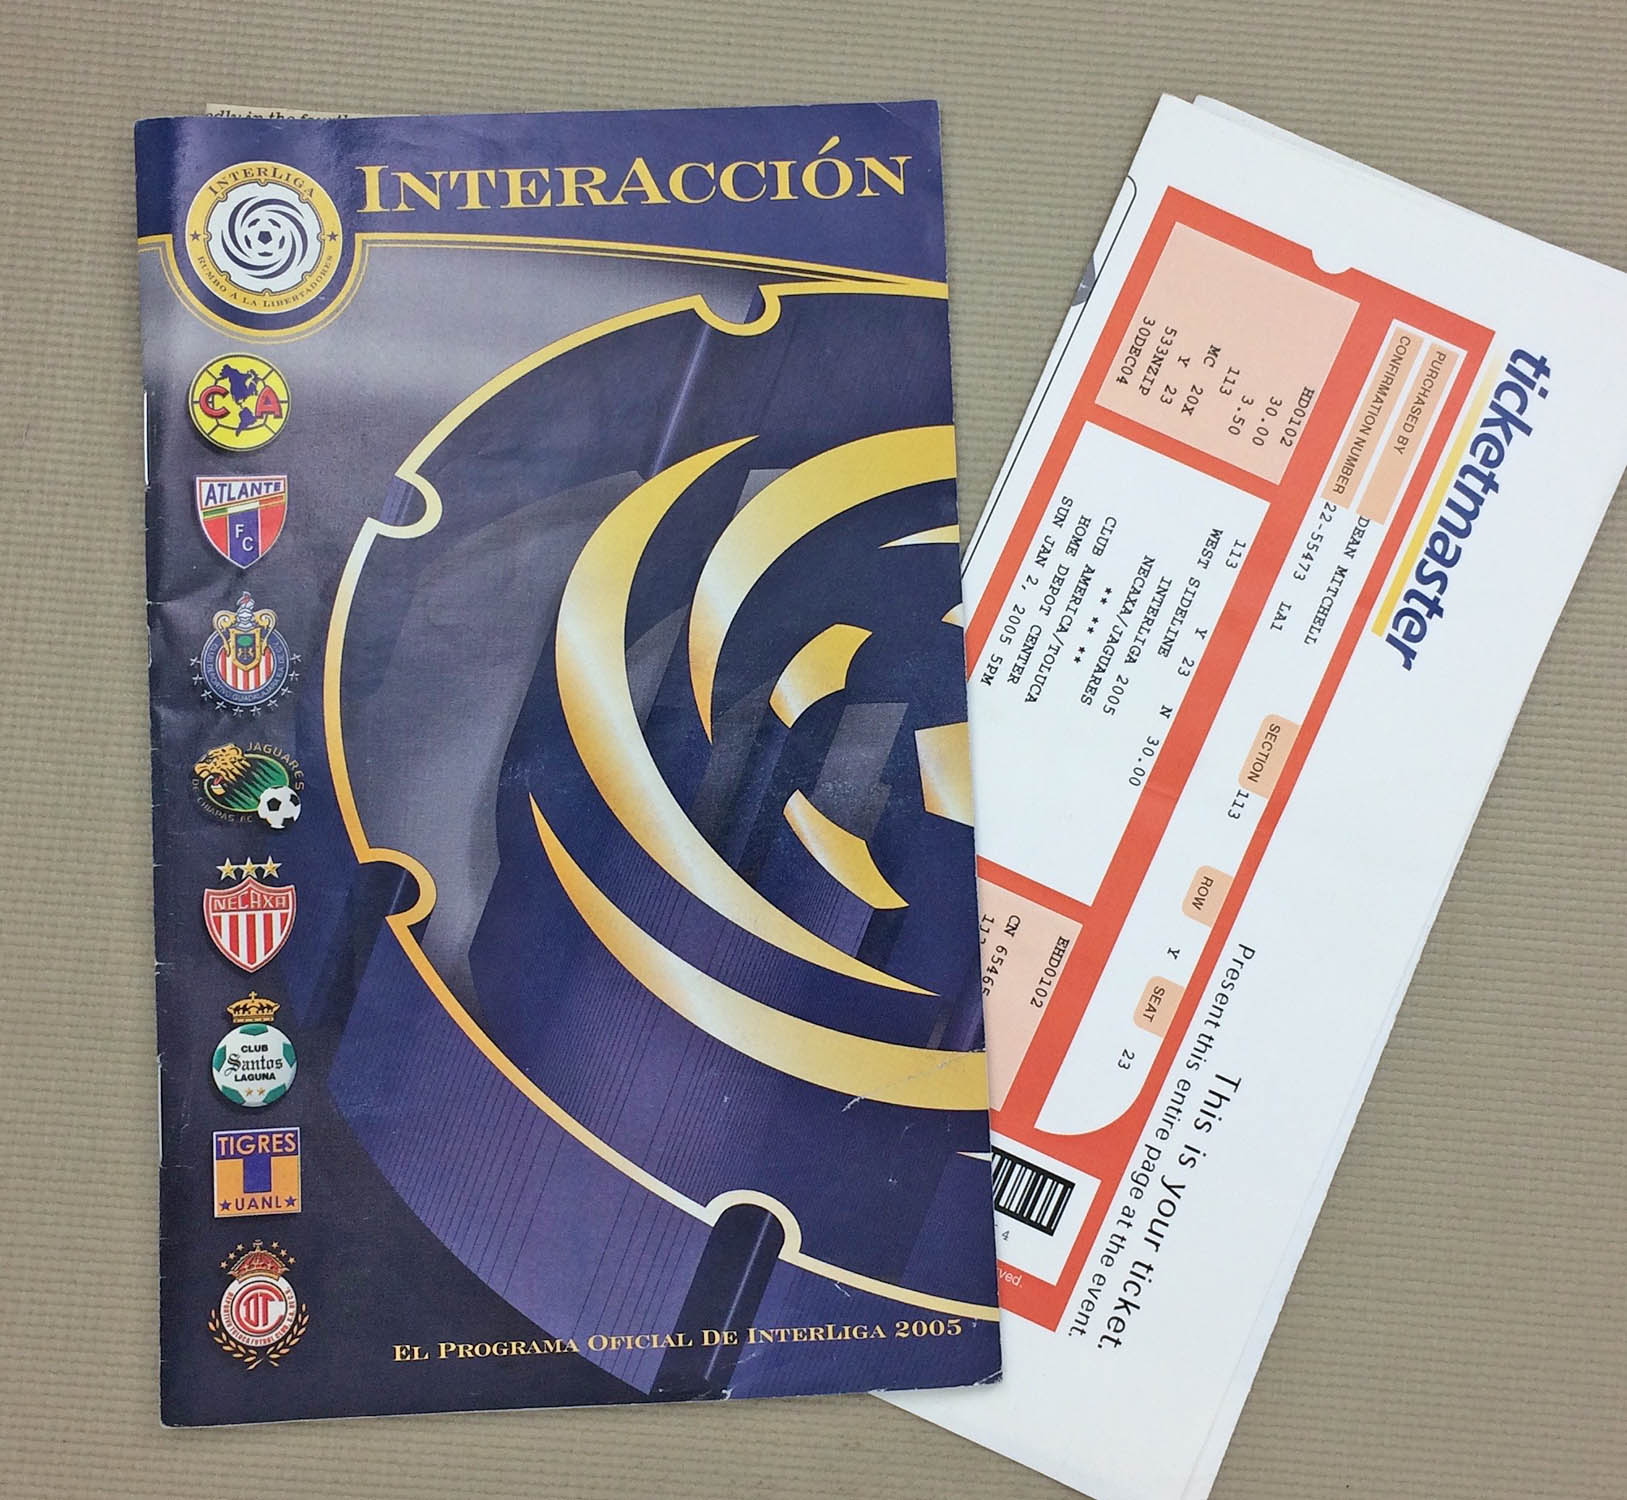 2005 Inter Liga Tournament Program